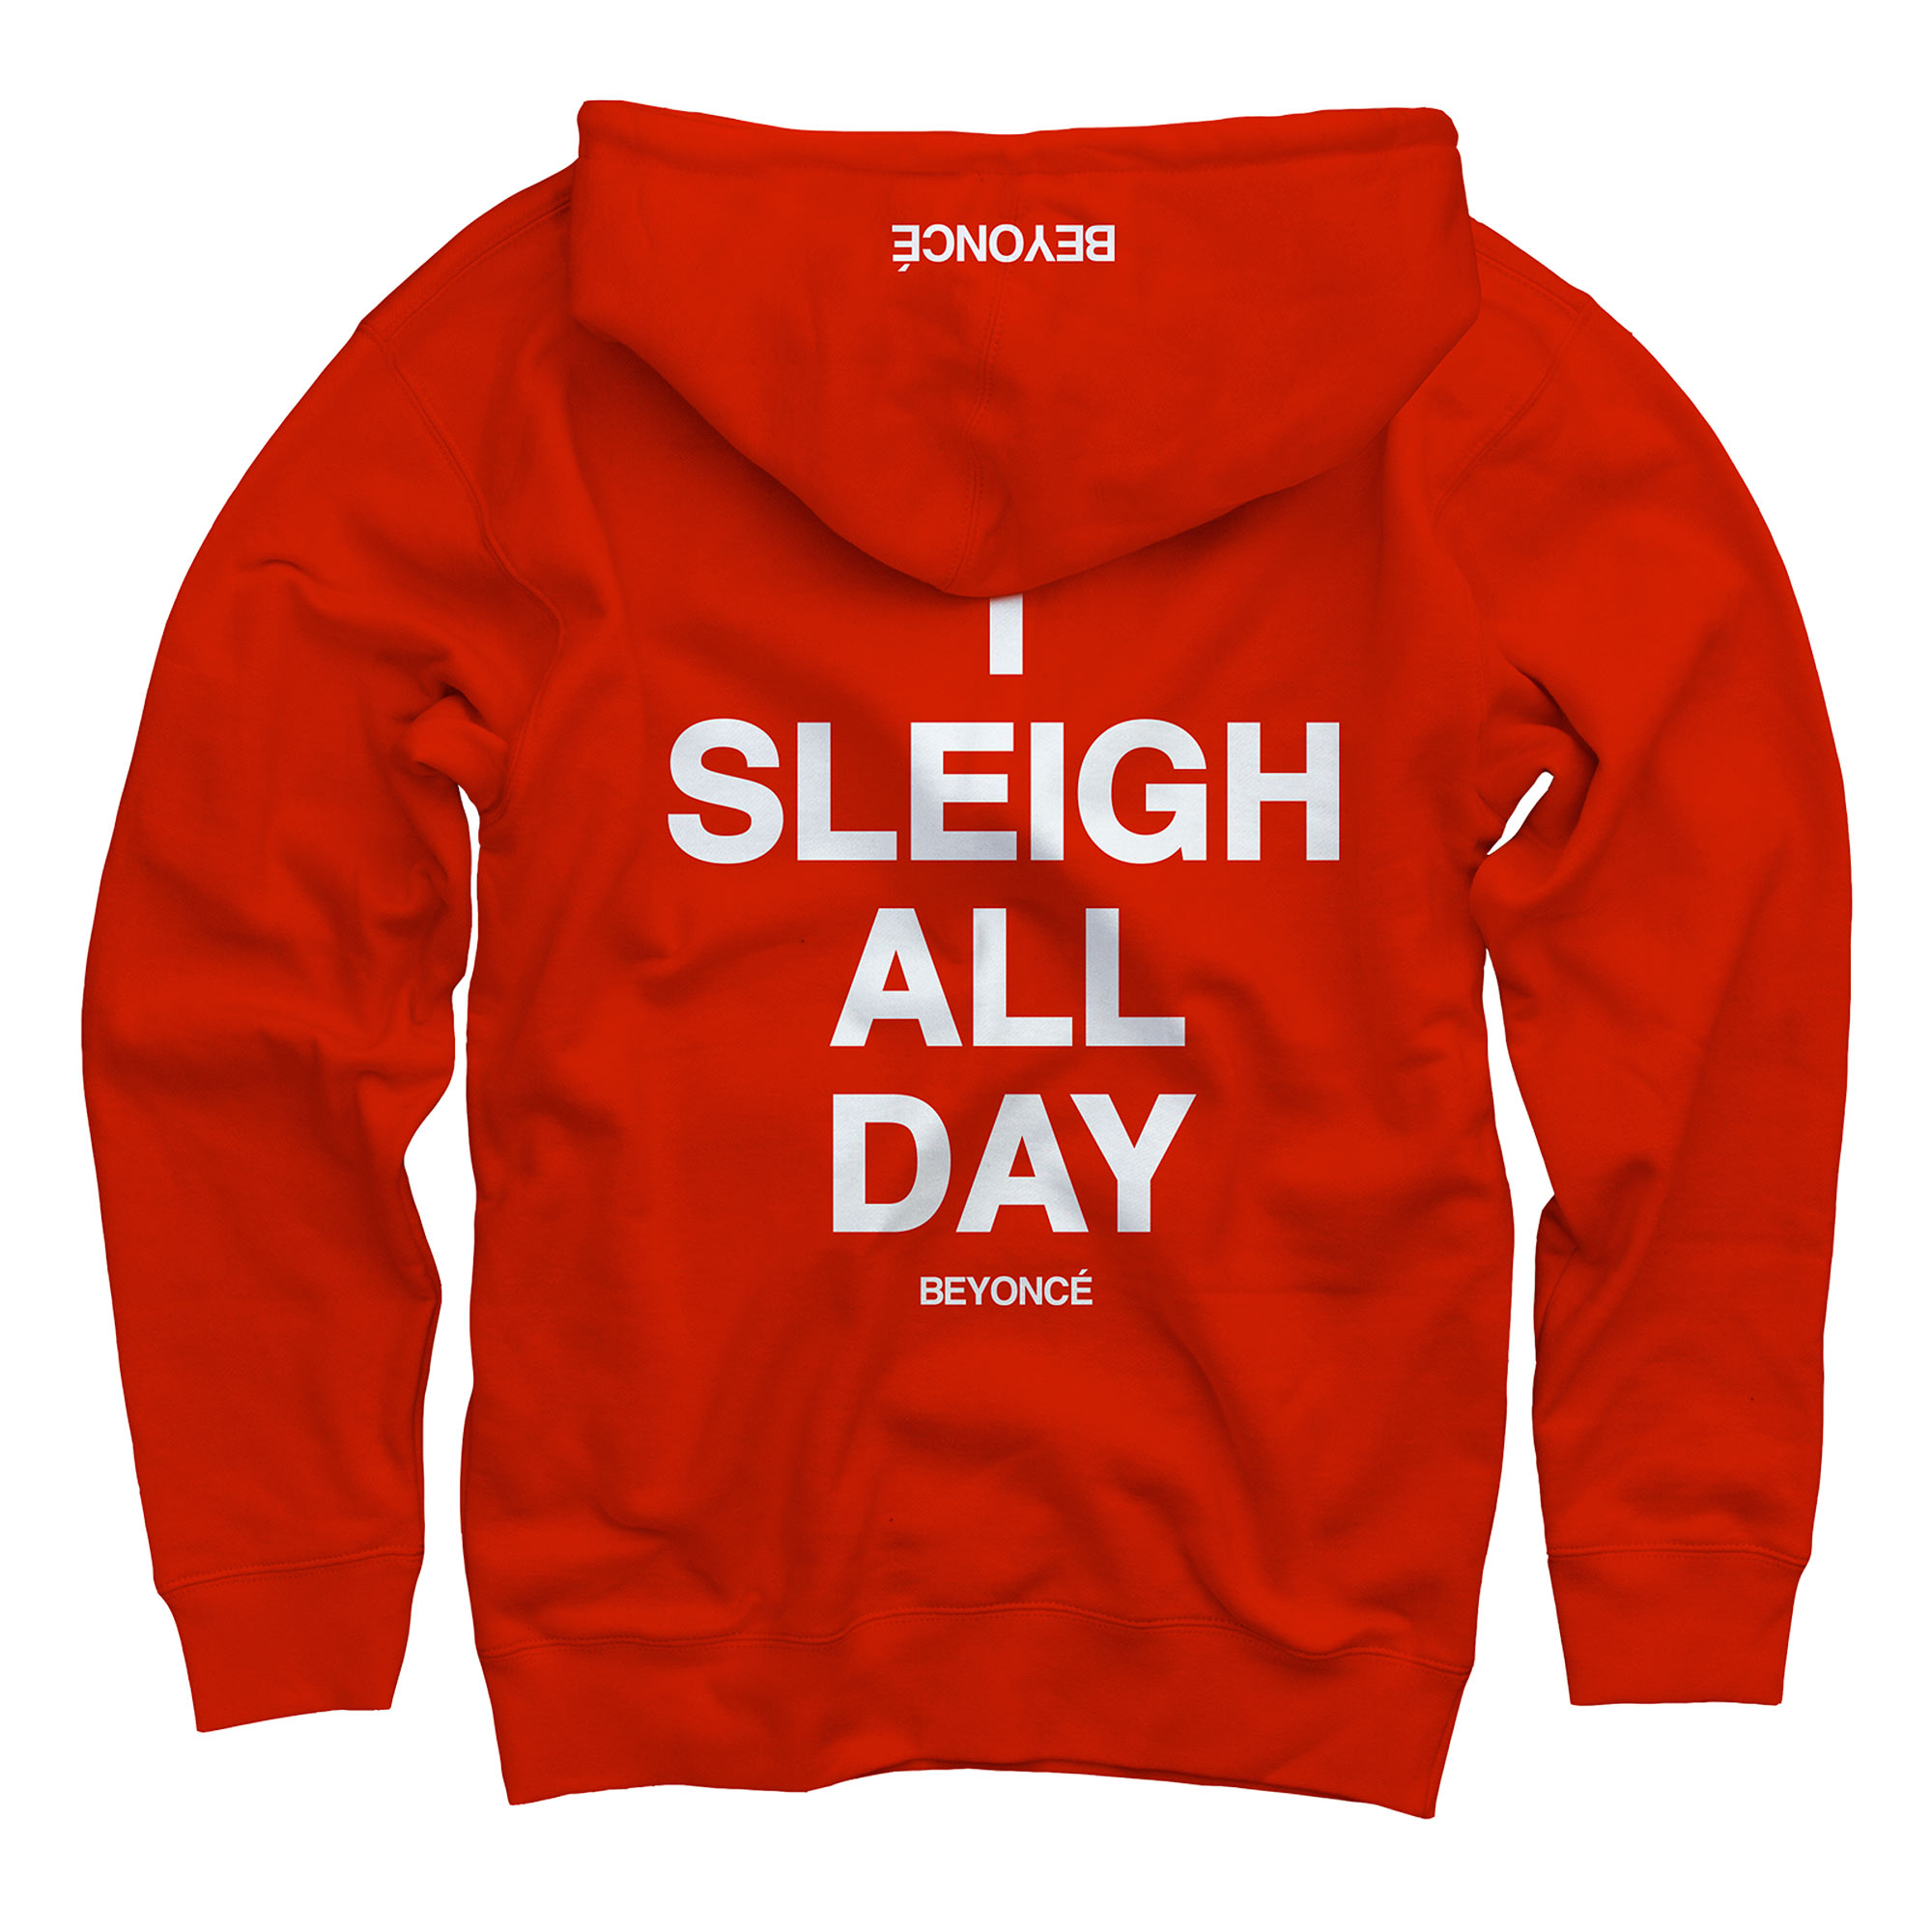 Beyonce Shop Christmas- http://shop.beyonce.com/products/59232-i-sleigh-red-pullover-sweatshirt